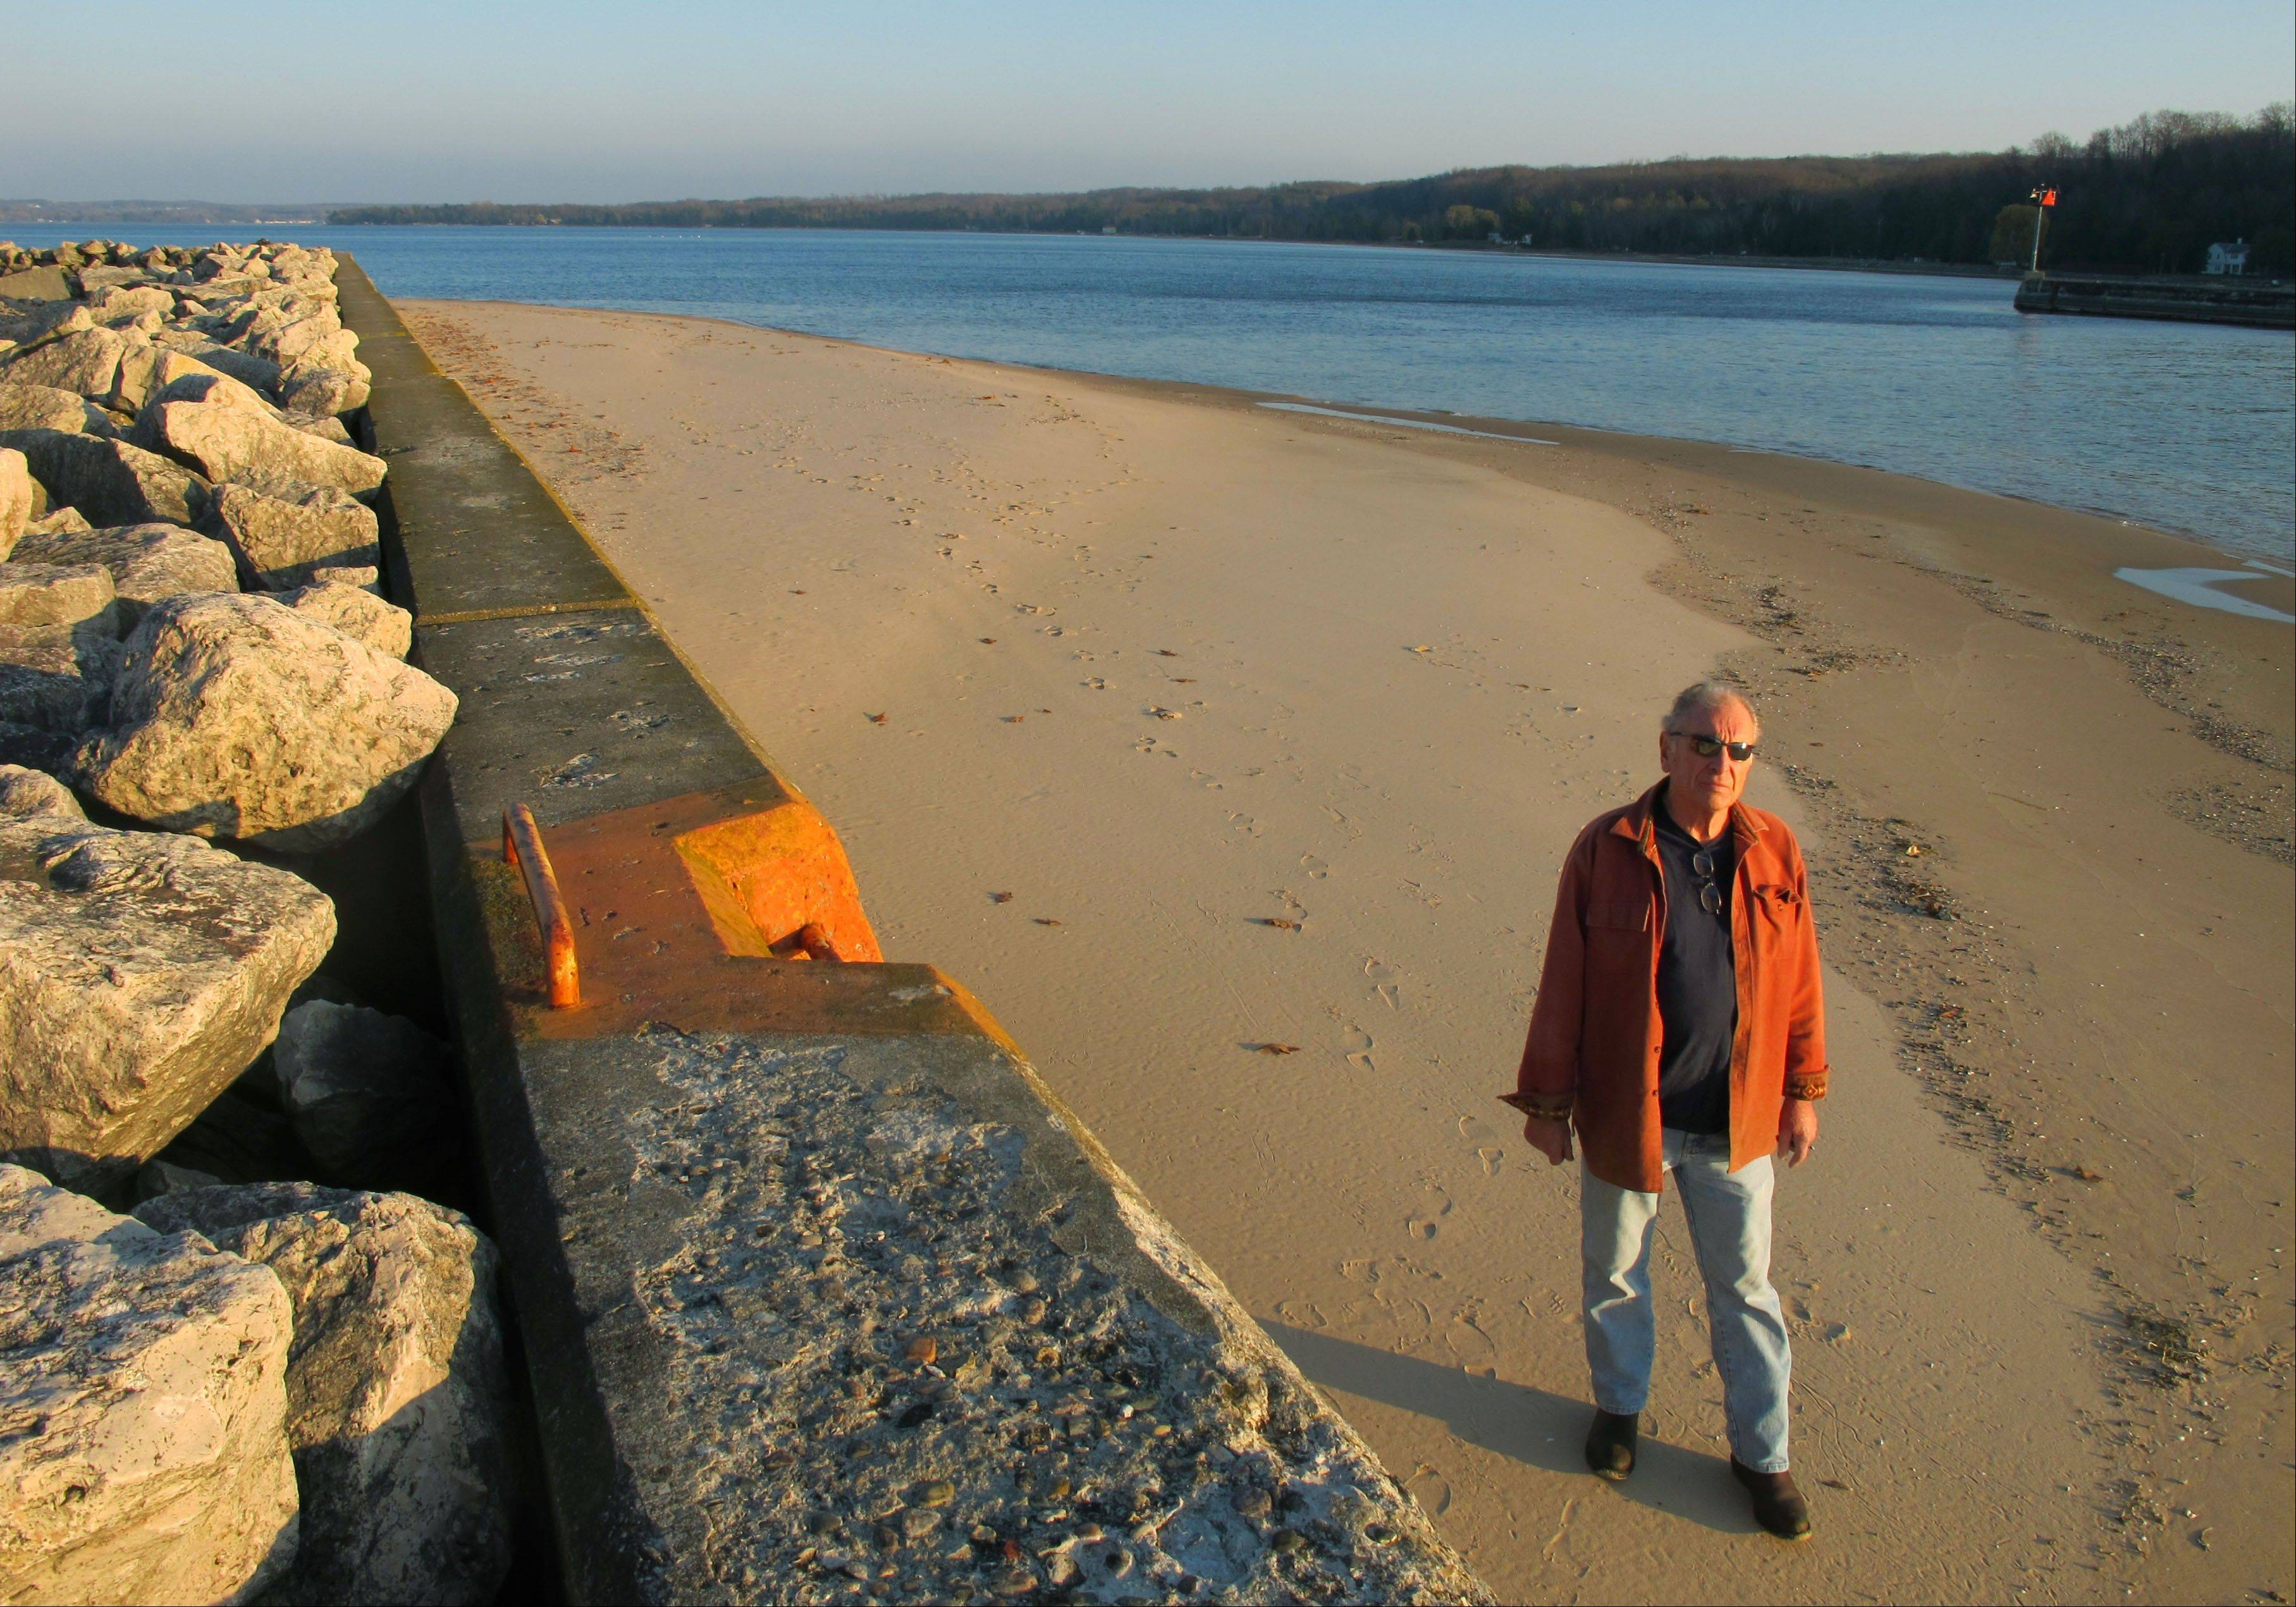 Jim Simons walks along a sandbar, exposed by low water levels, on the Portage Lake channel that leads to Lake Michigan at Onekama, Mich.